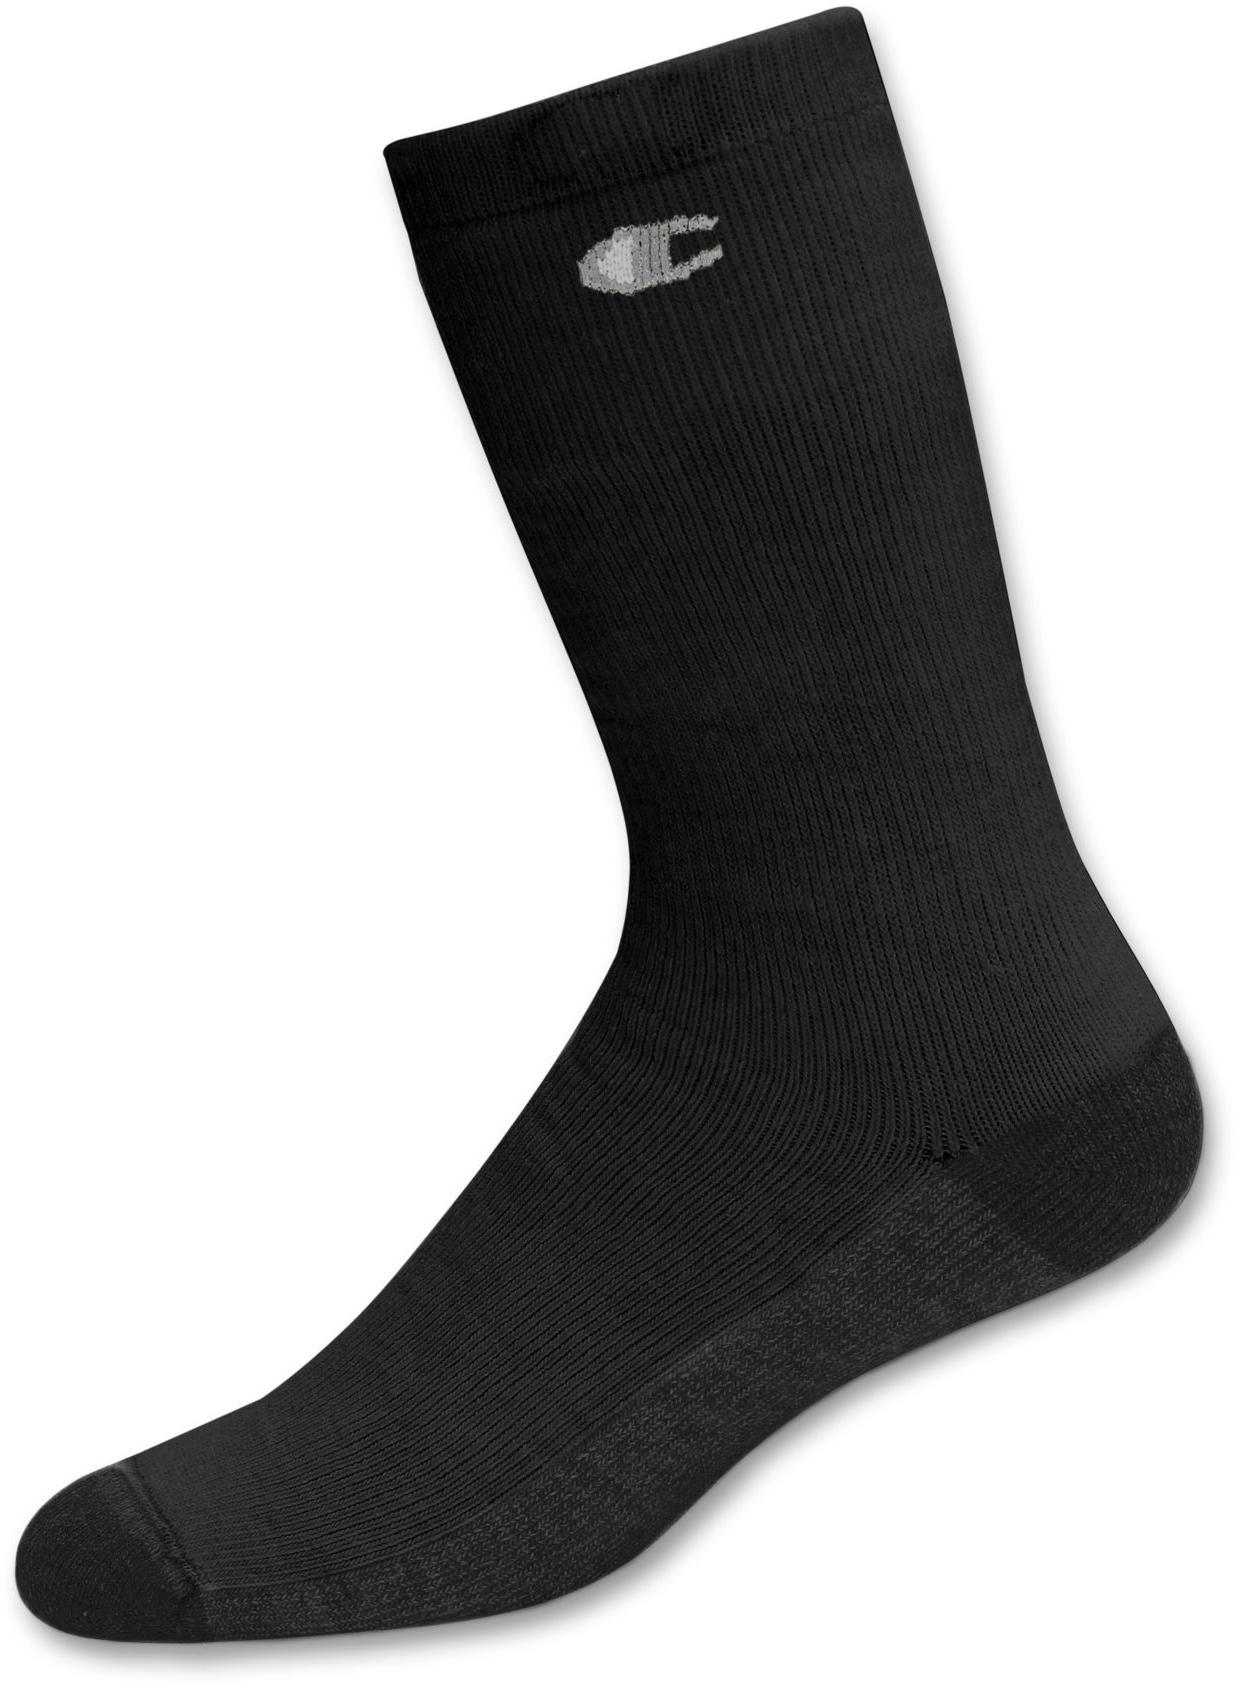 Amazon.com: womens cotton crew socks: Clothing, Shoes ...